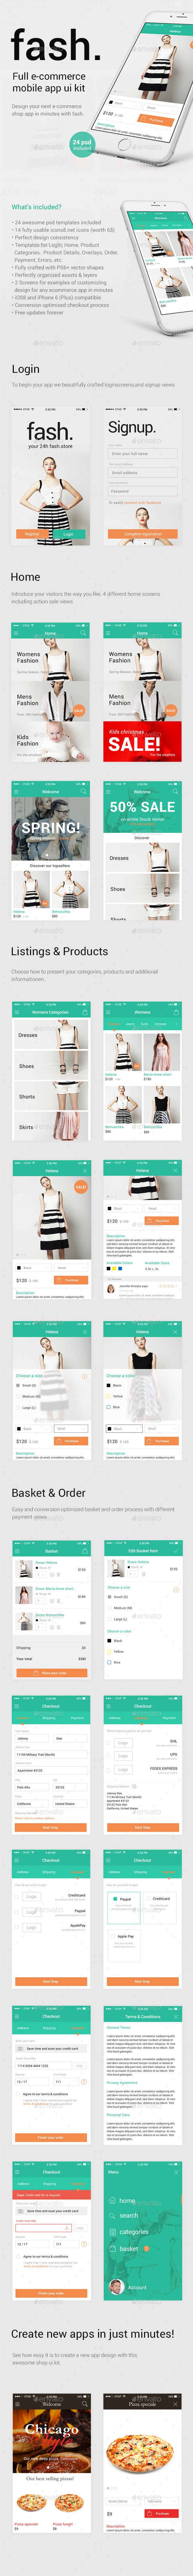 Fash A Mobile E-Commerce Shop UI Design Kit